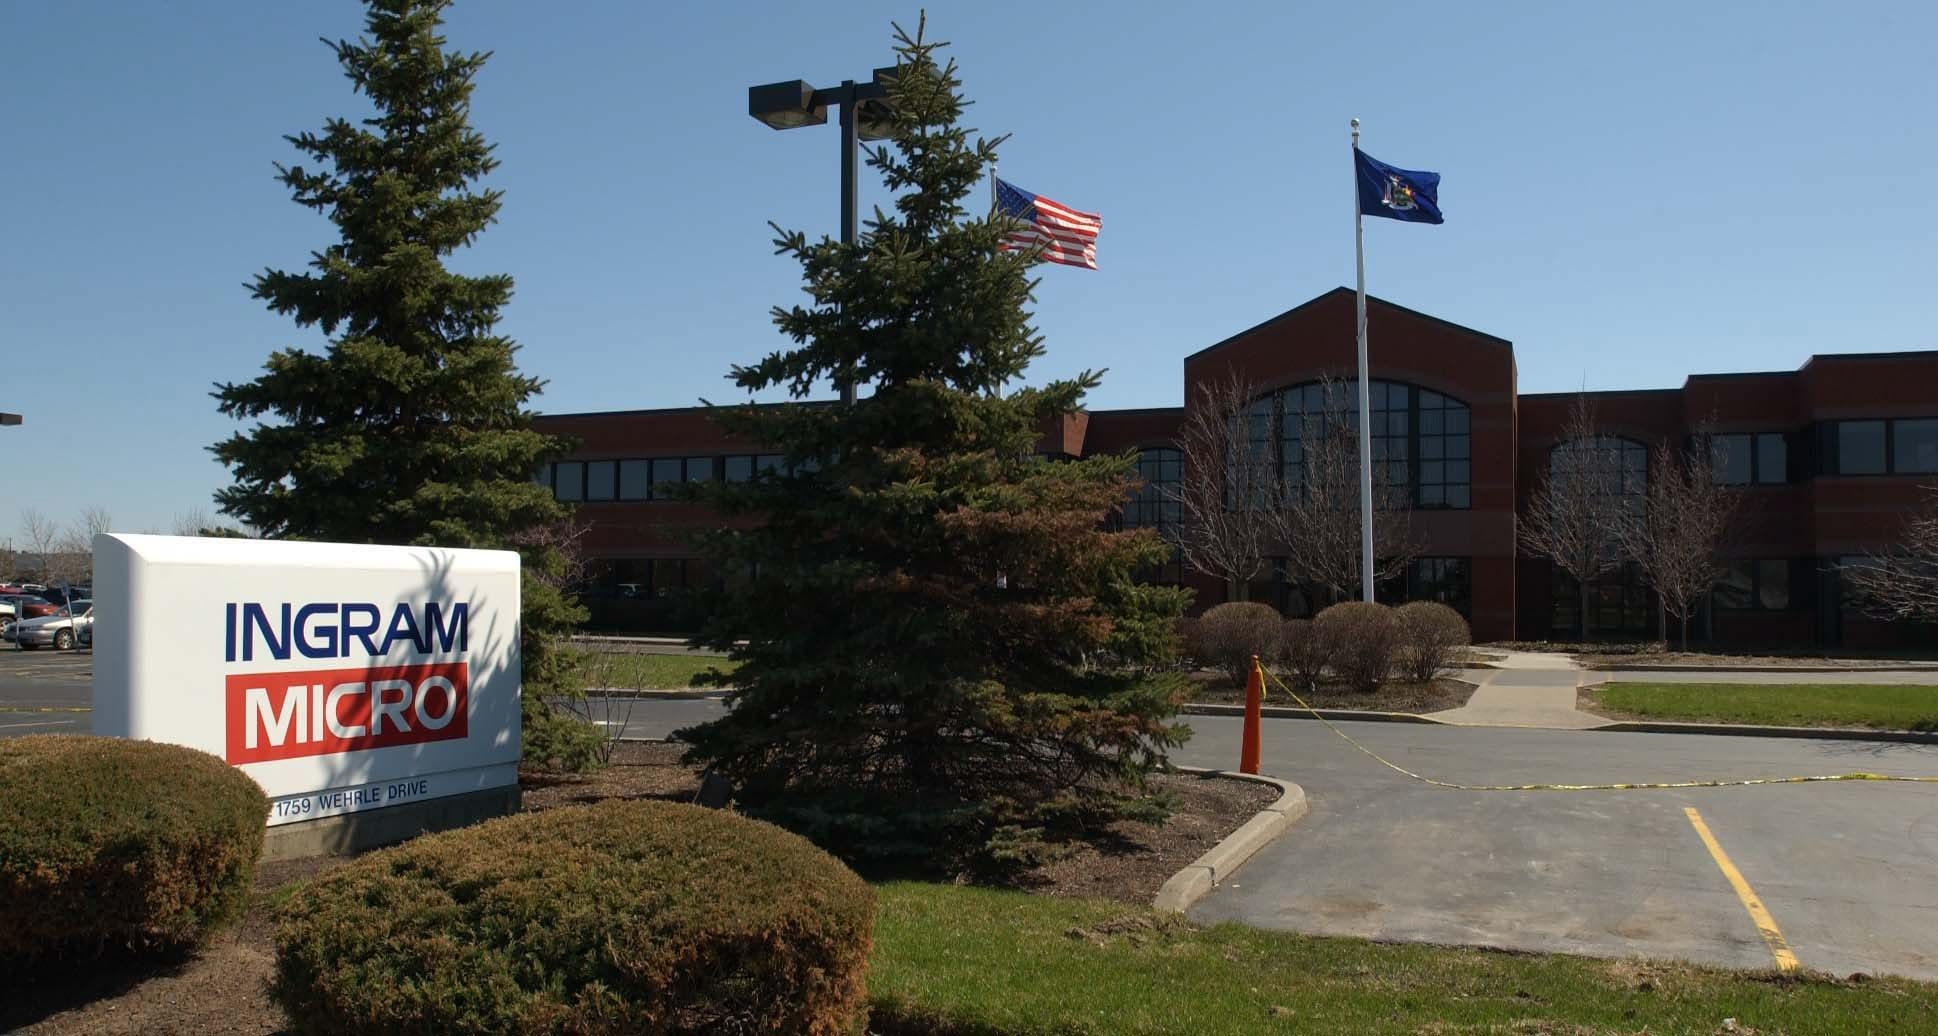 Ingram Micro's expansion project is expected to bring 250 new jobs to Amherst.